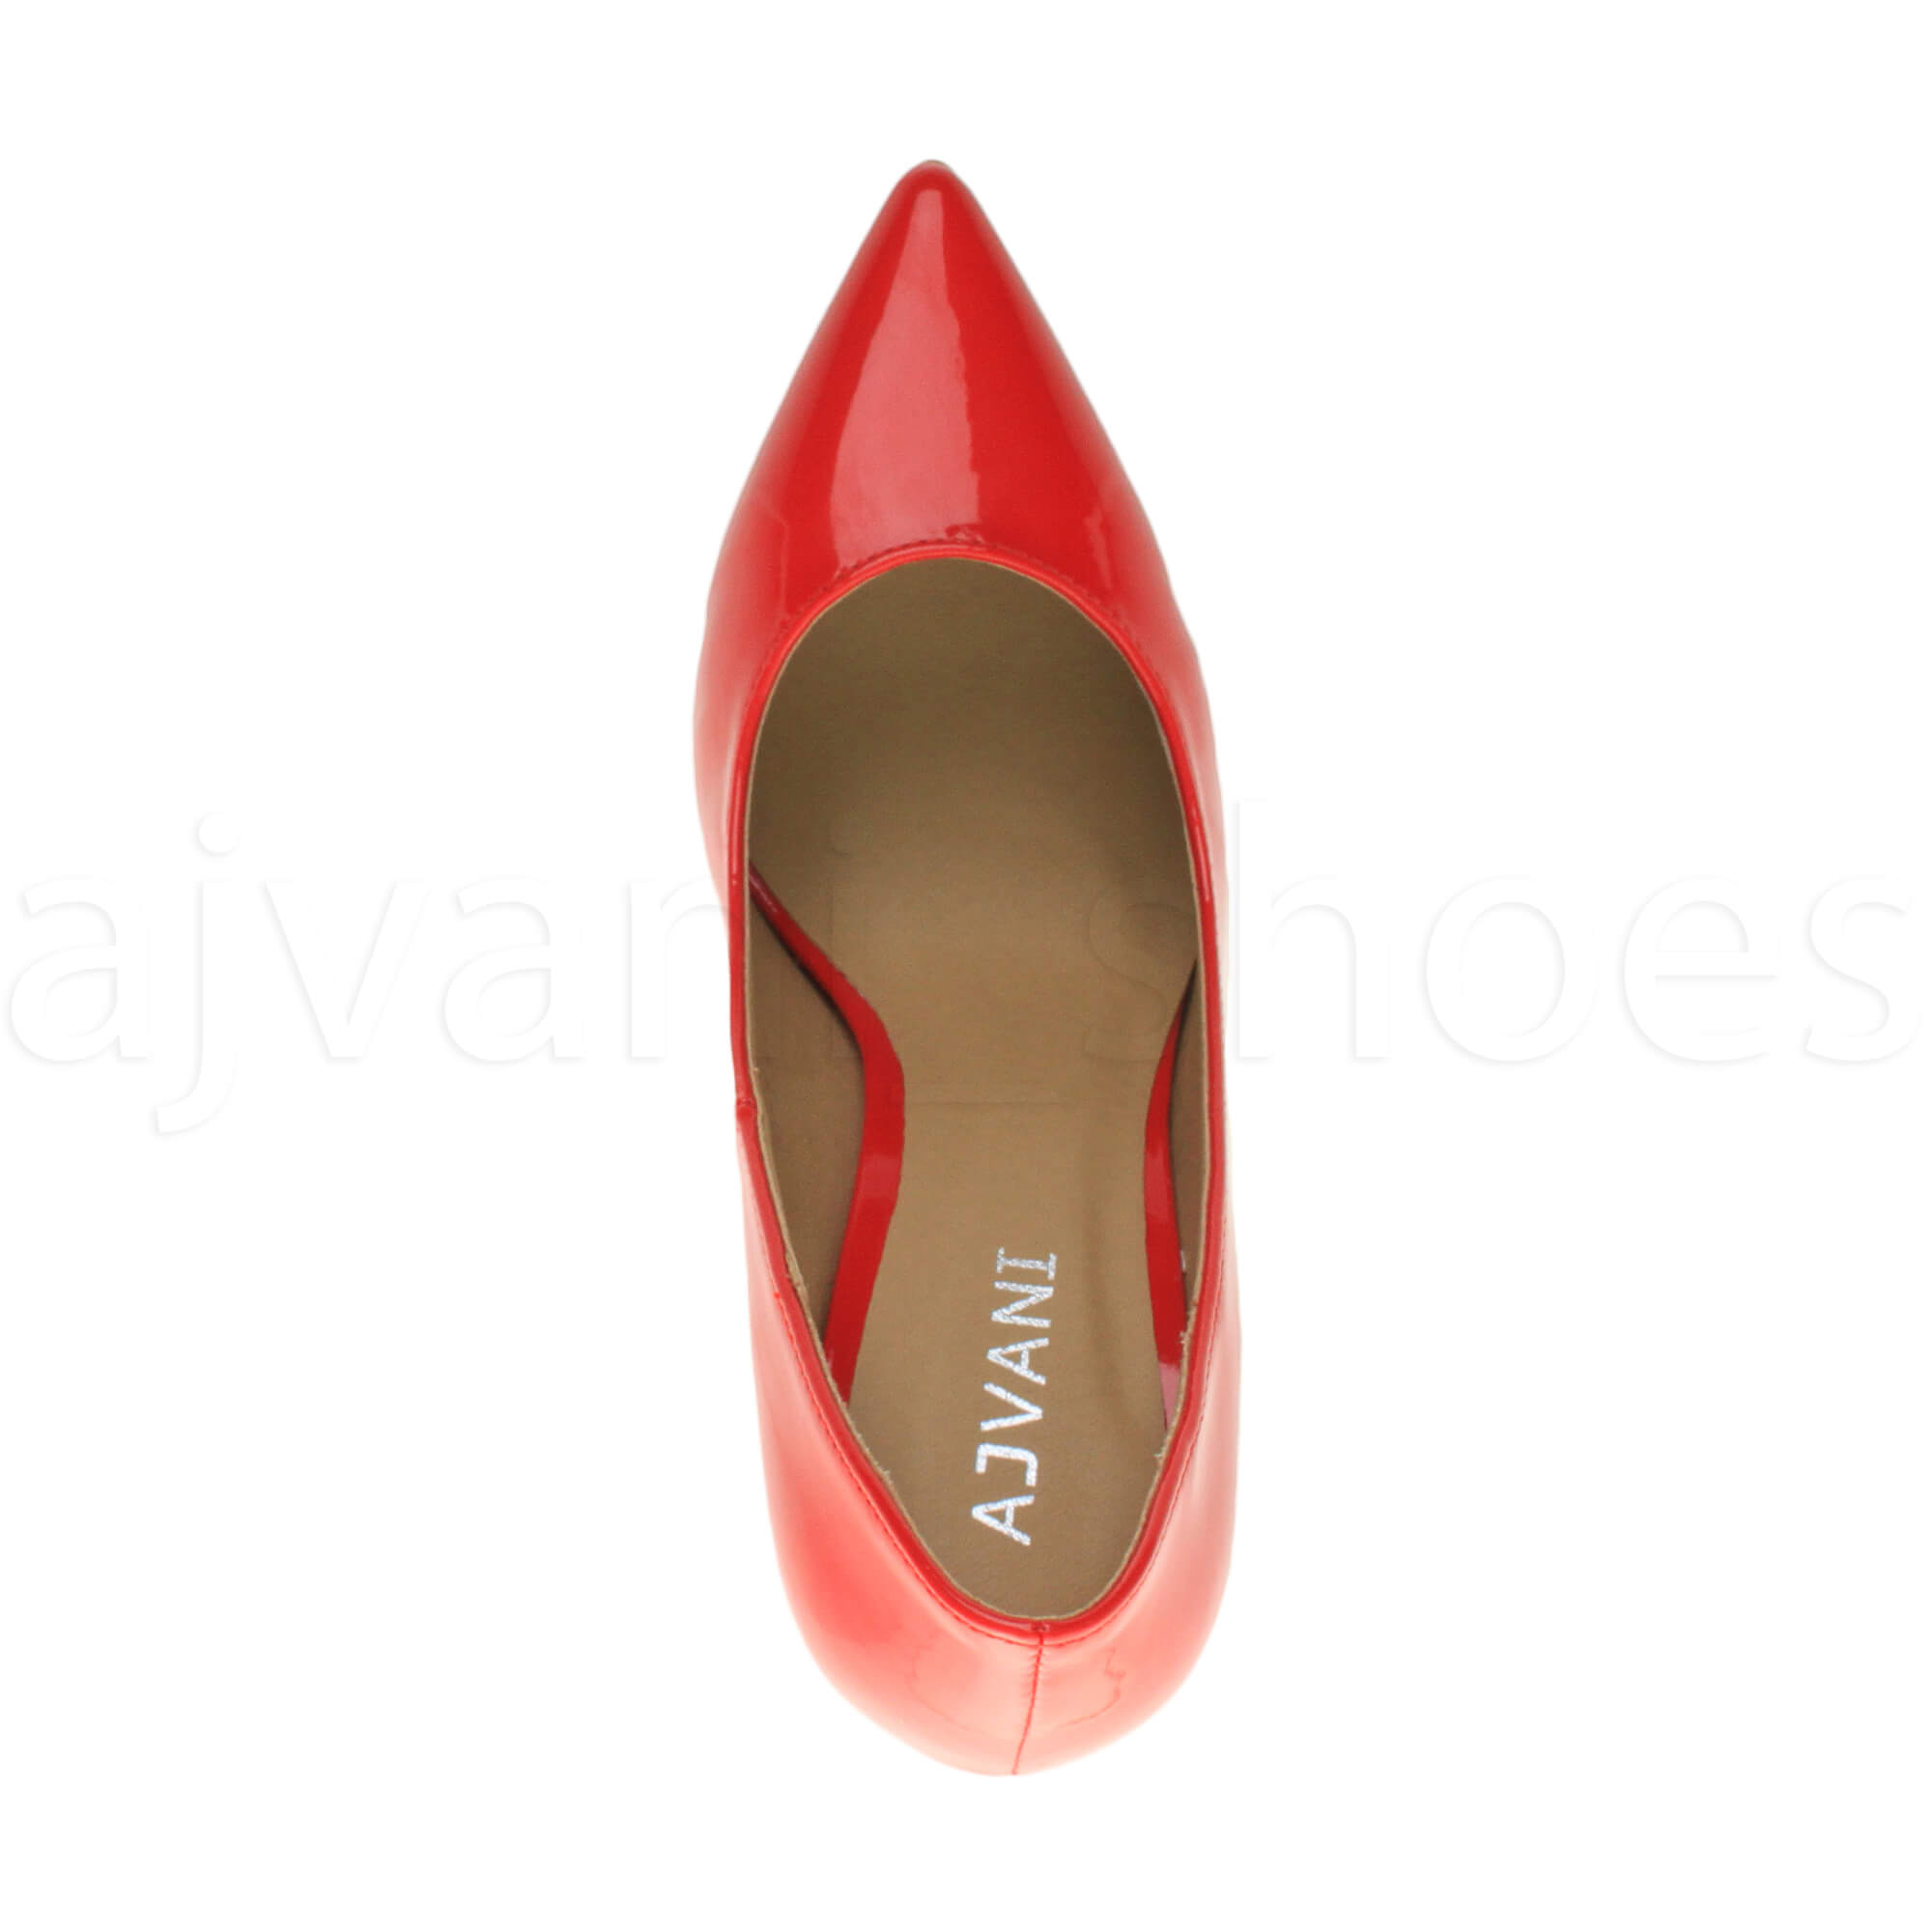 WOMENS-LADIES-HIGH-HEEL-POINTED-CONTRAST-COURT-SMART-PARTY-WORK-SHOES-PUMPS-SIZE thumbnail 166